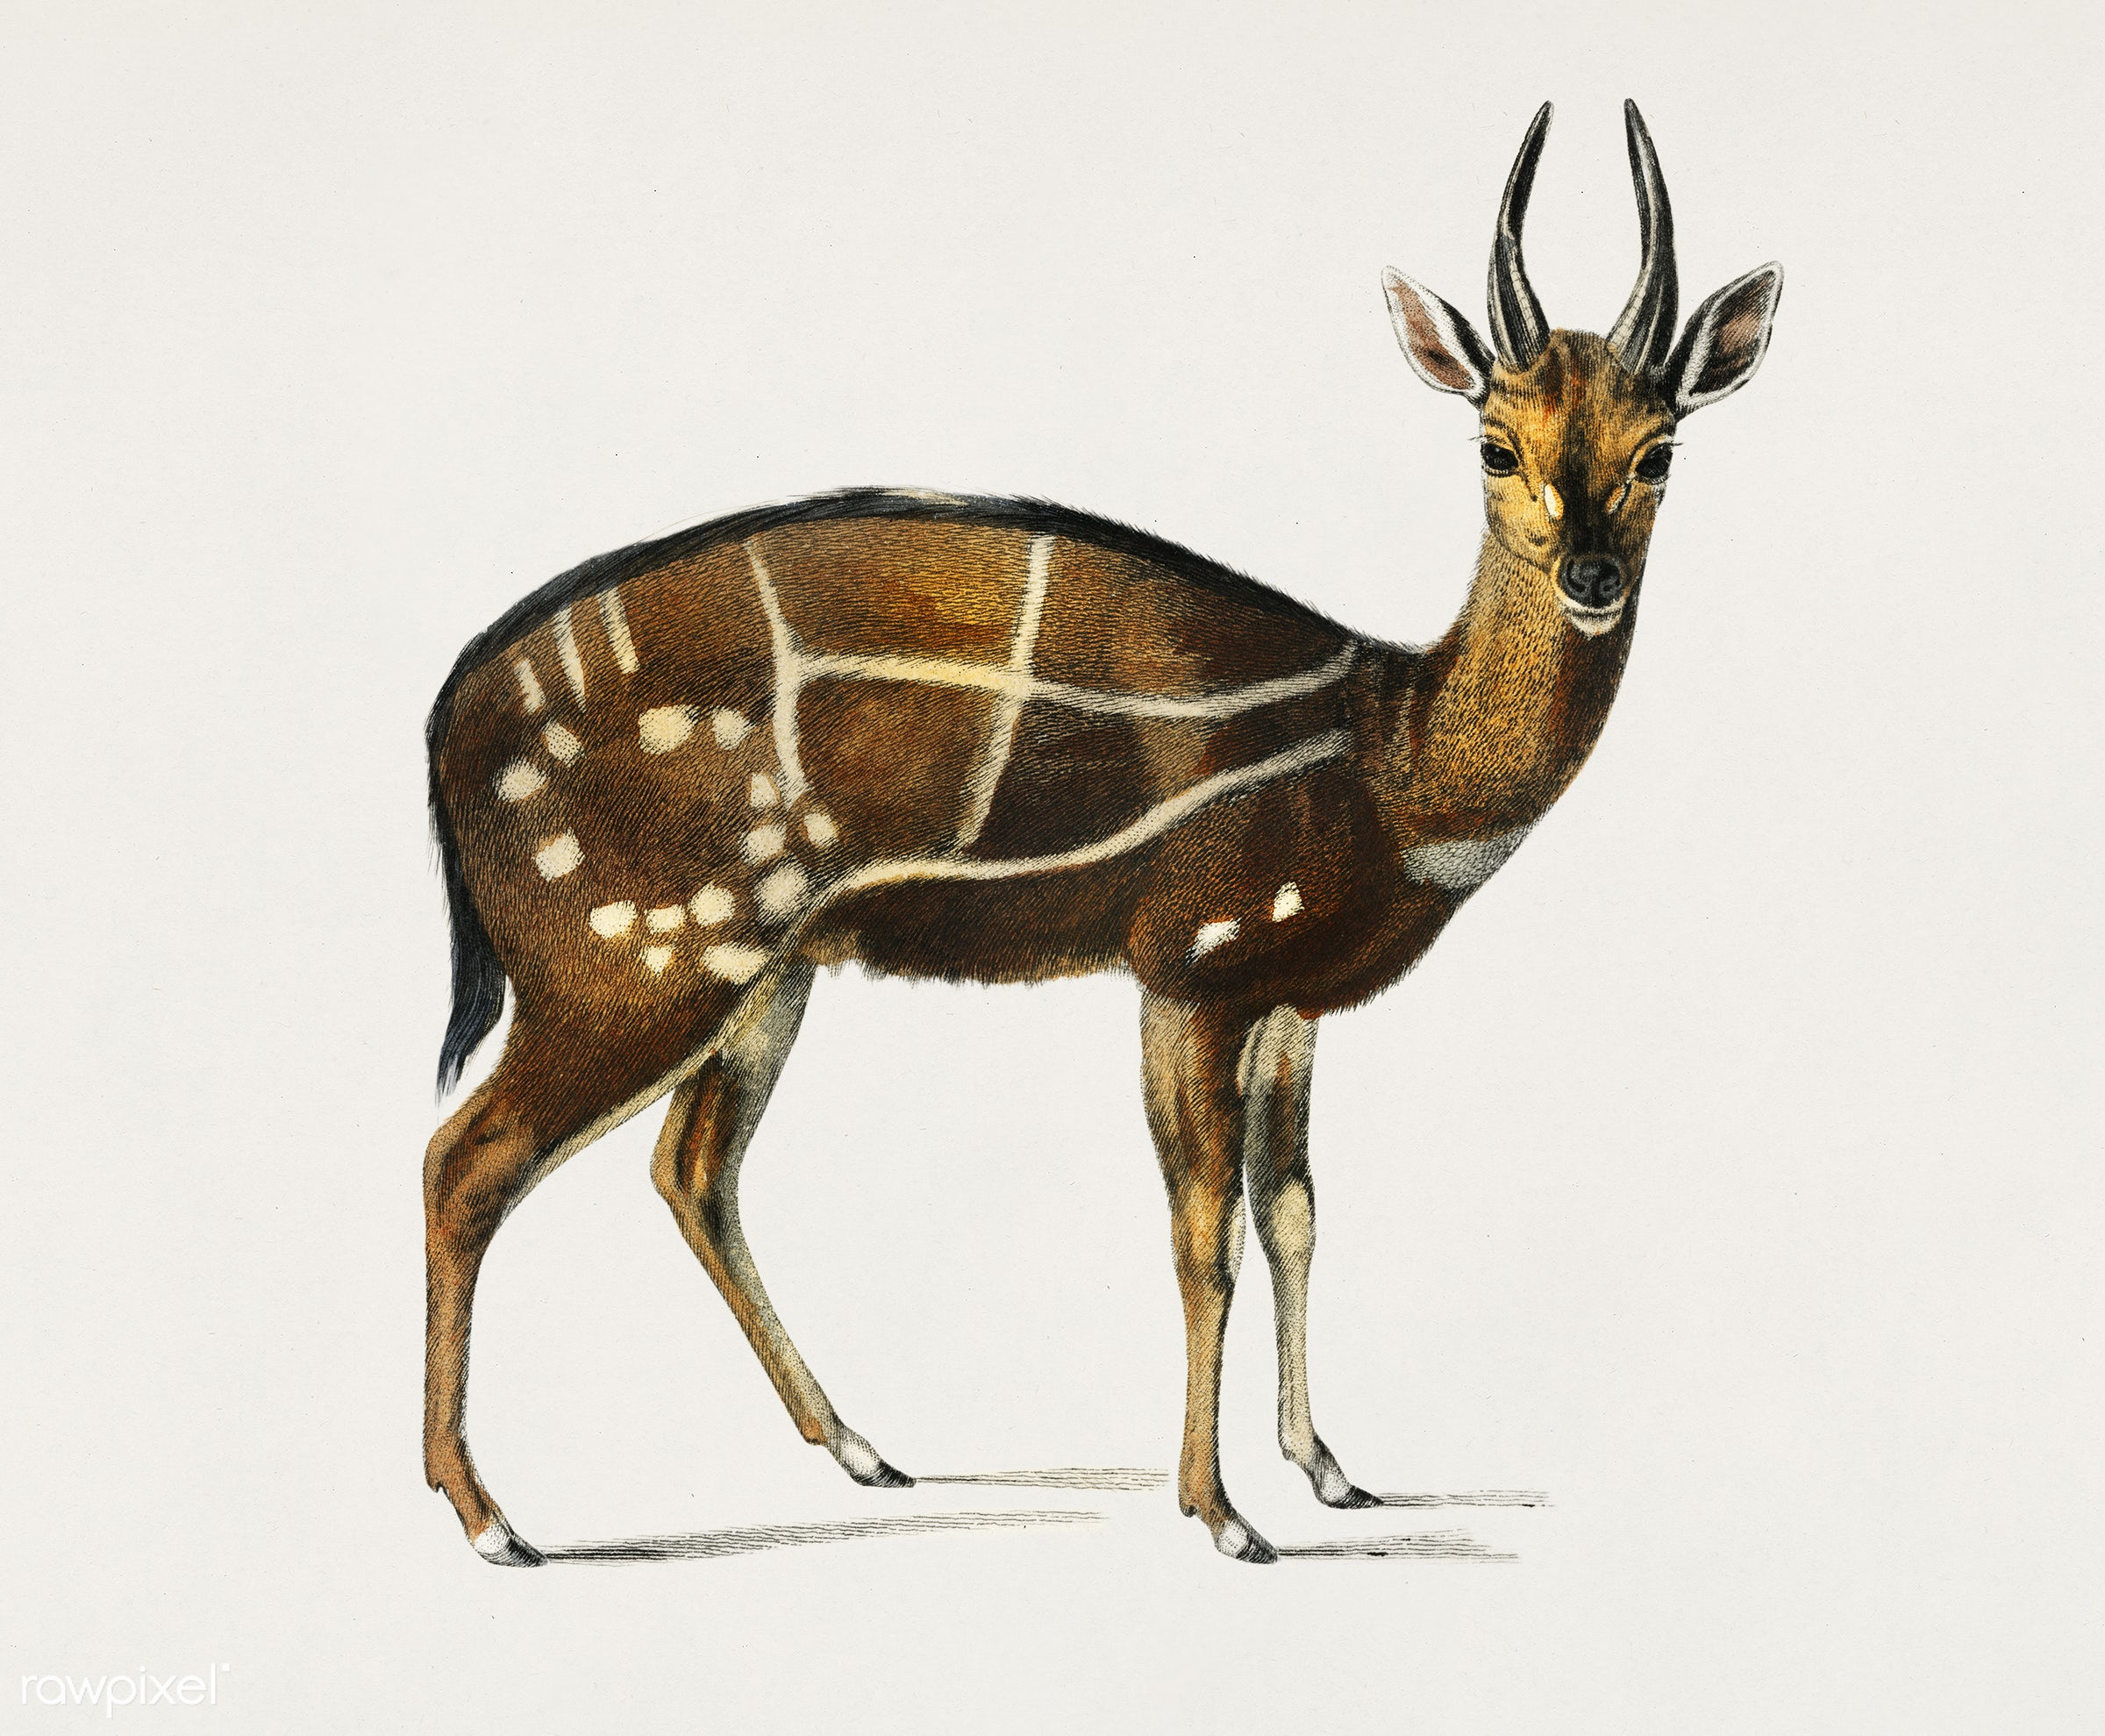 Antilope guib illustrated by Charles Dessalines D' Orbigny (1806-1876). Digitally enhanced from our own 1892 edition of...